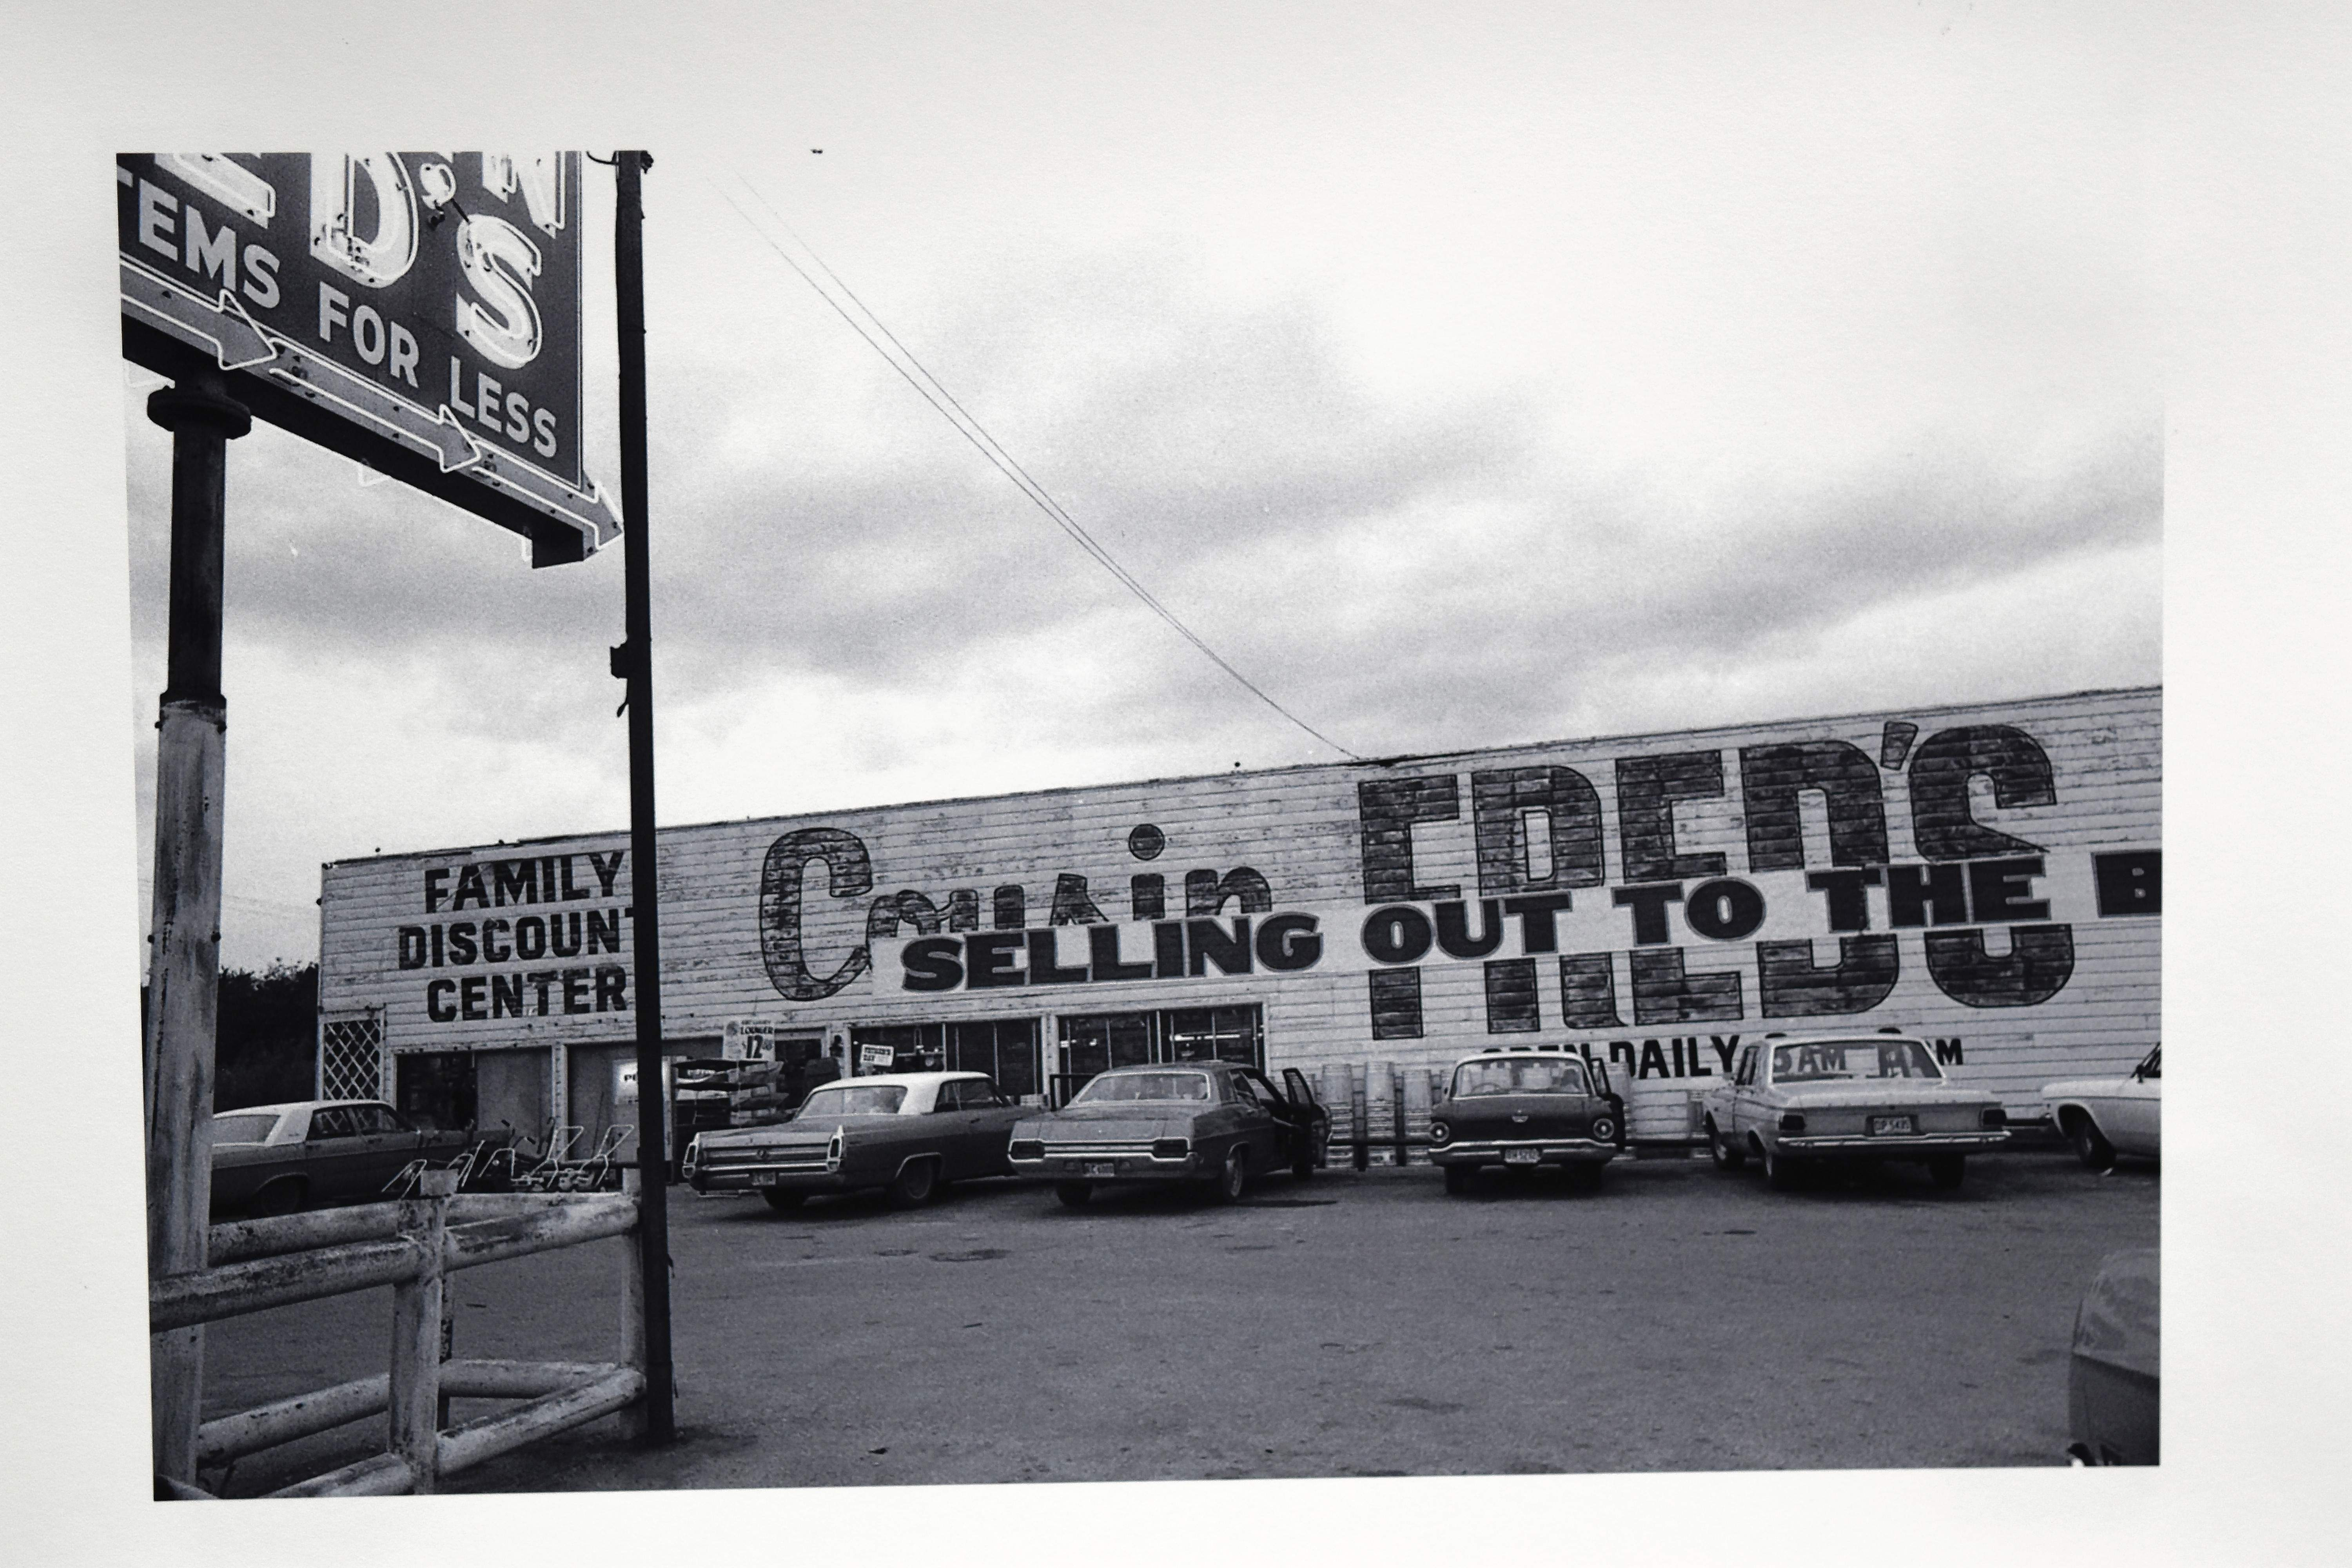 A photo of Cousin Fred's in Eldorado taken by Charles Hammond during the summer of 1971.